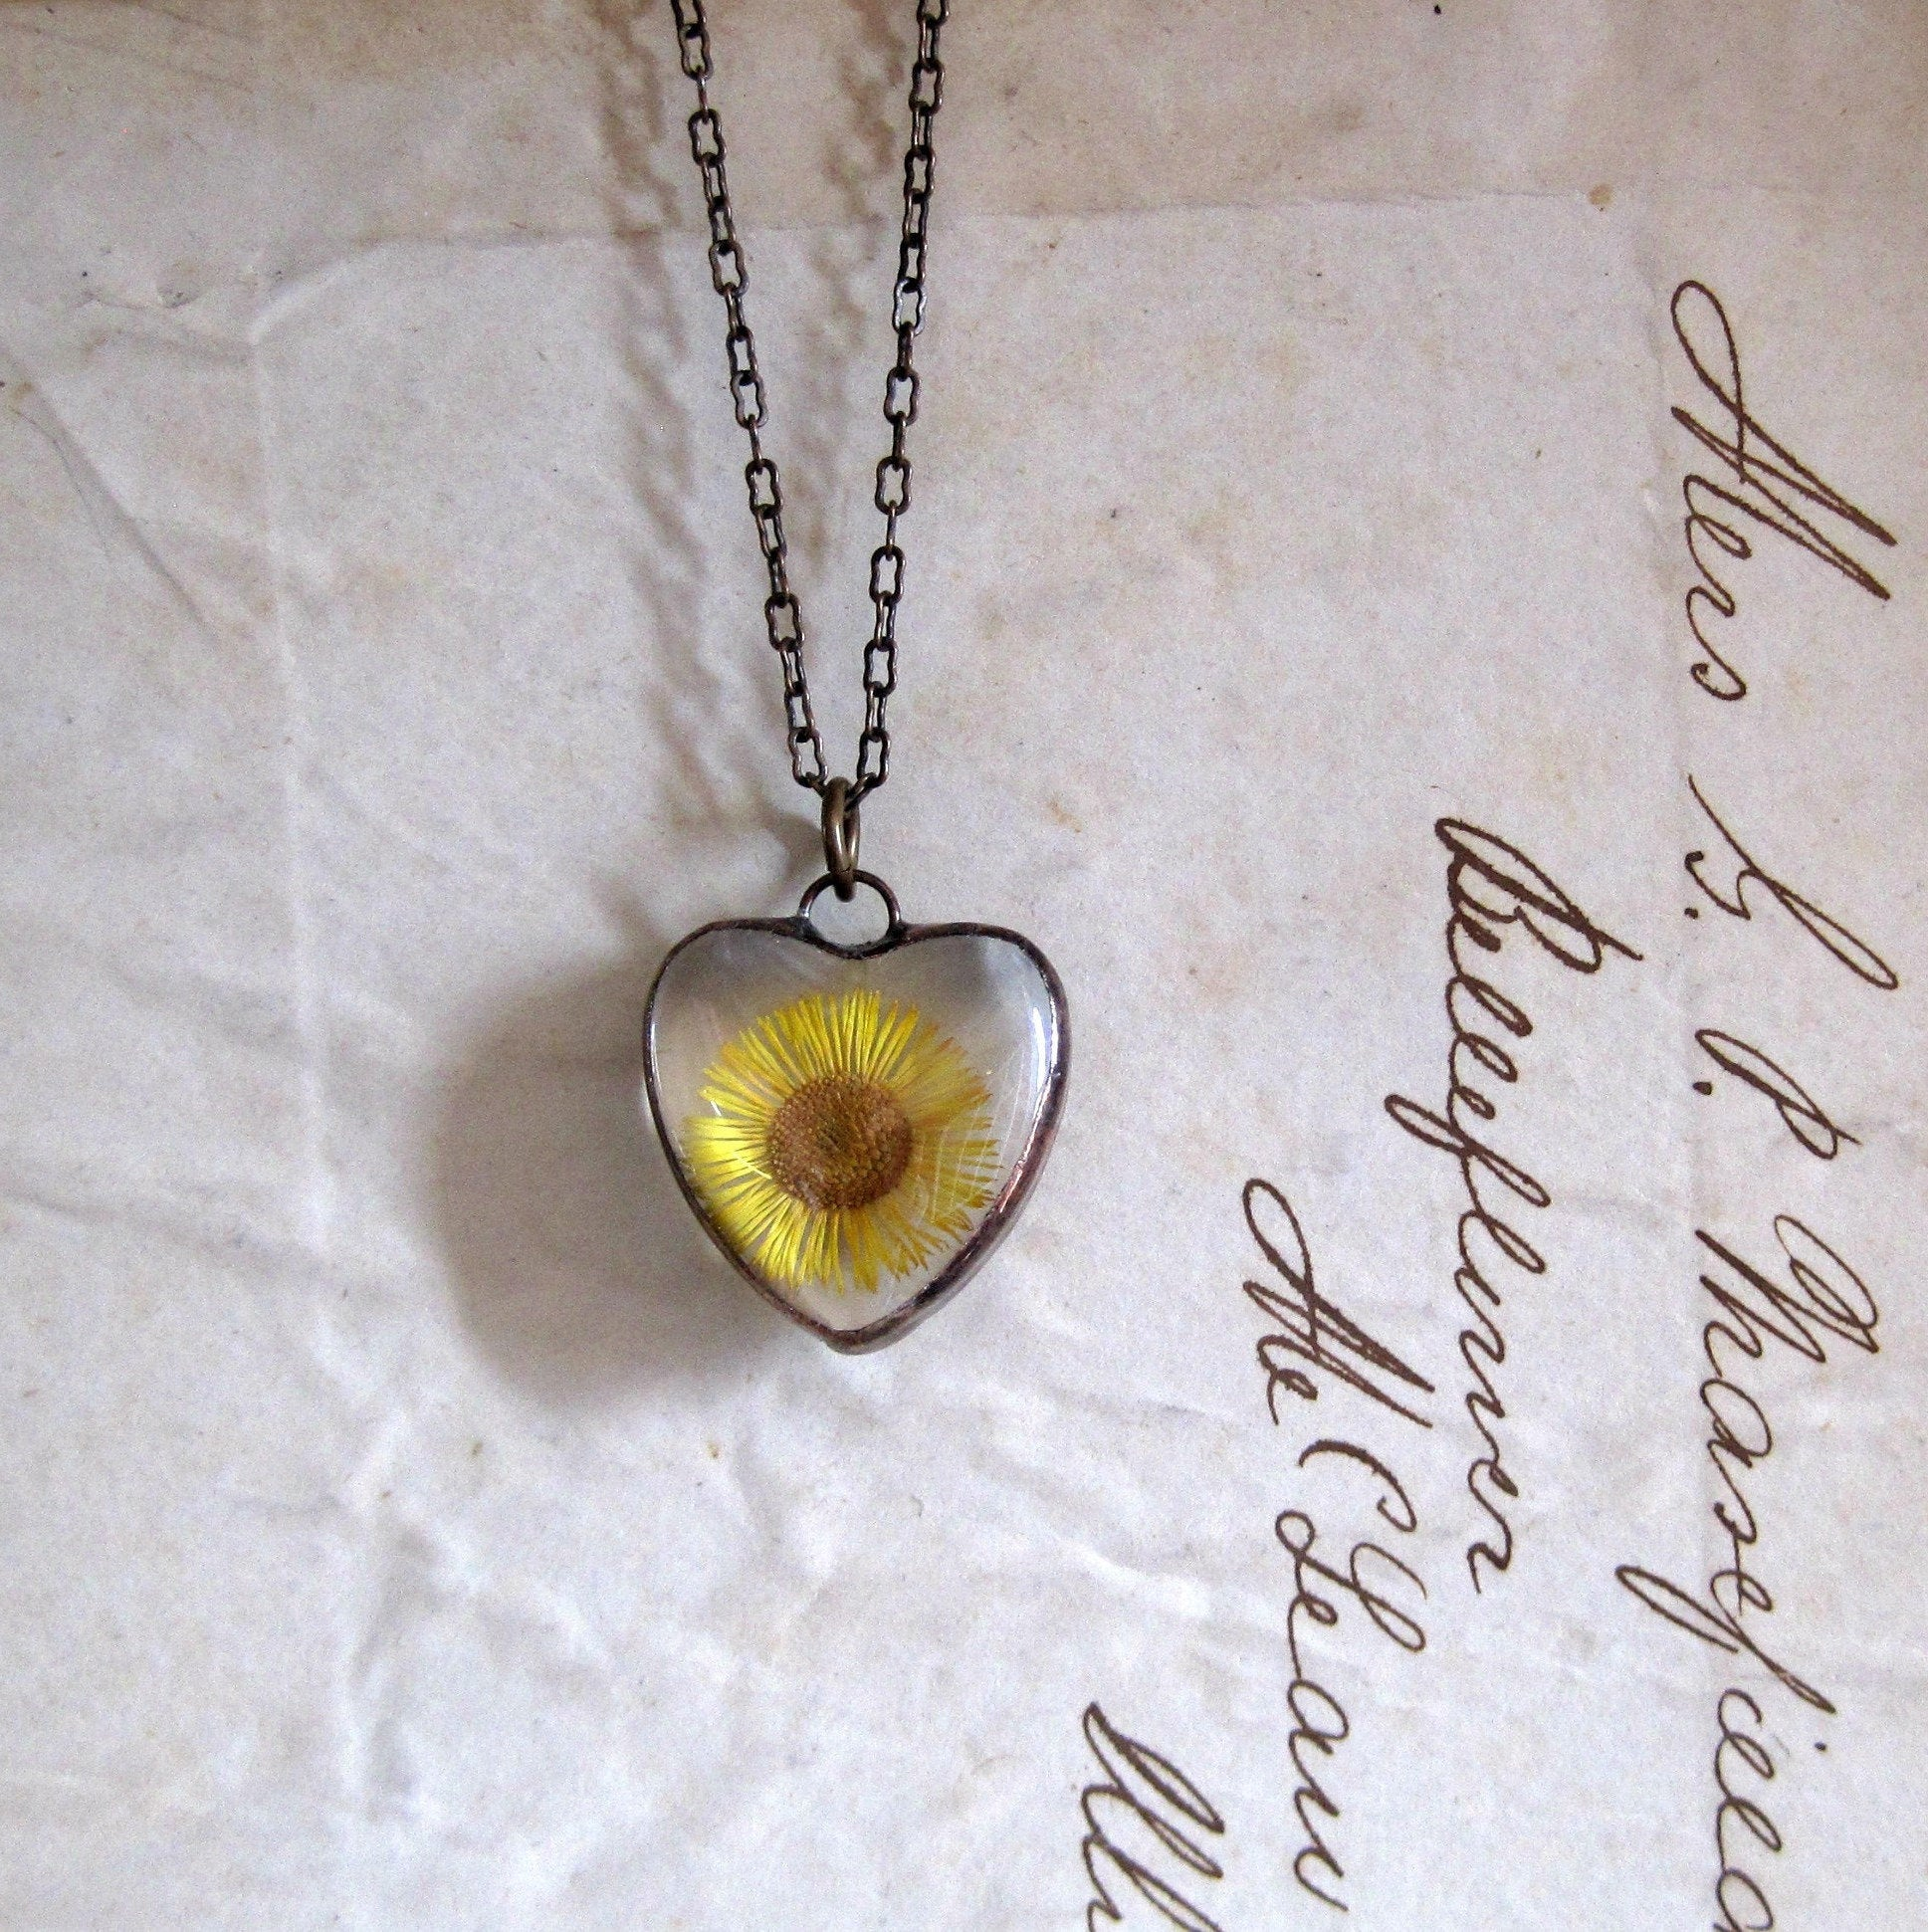 Pressed Flower Necklace, Sunflower Necklace, Heart Glass Jewelry            Pressed Flower Necklace, Fleabane, Heart Glass Jewelry